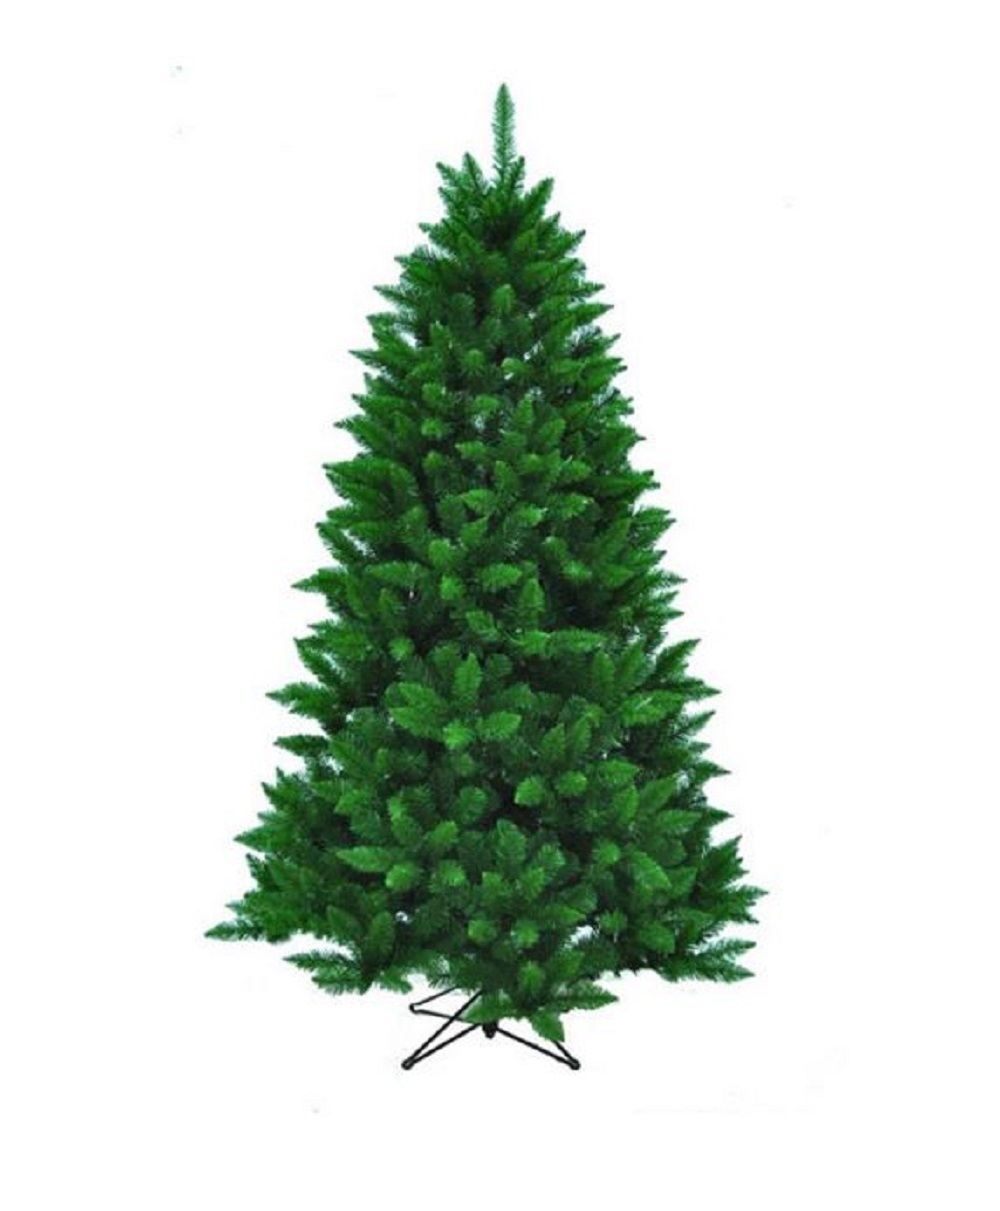 Unlit Artificial Christmas Tree 7 ft 1026 Tips with Stand Home Holiday Decor NEW